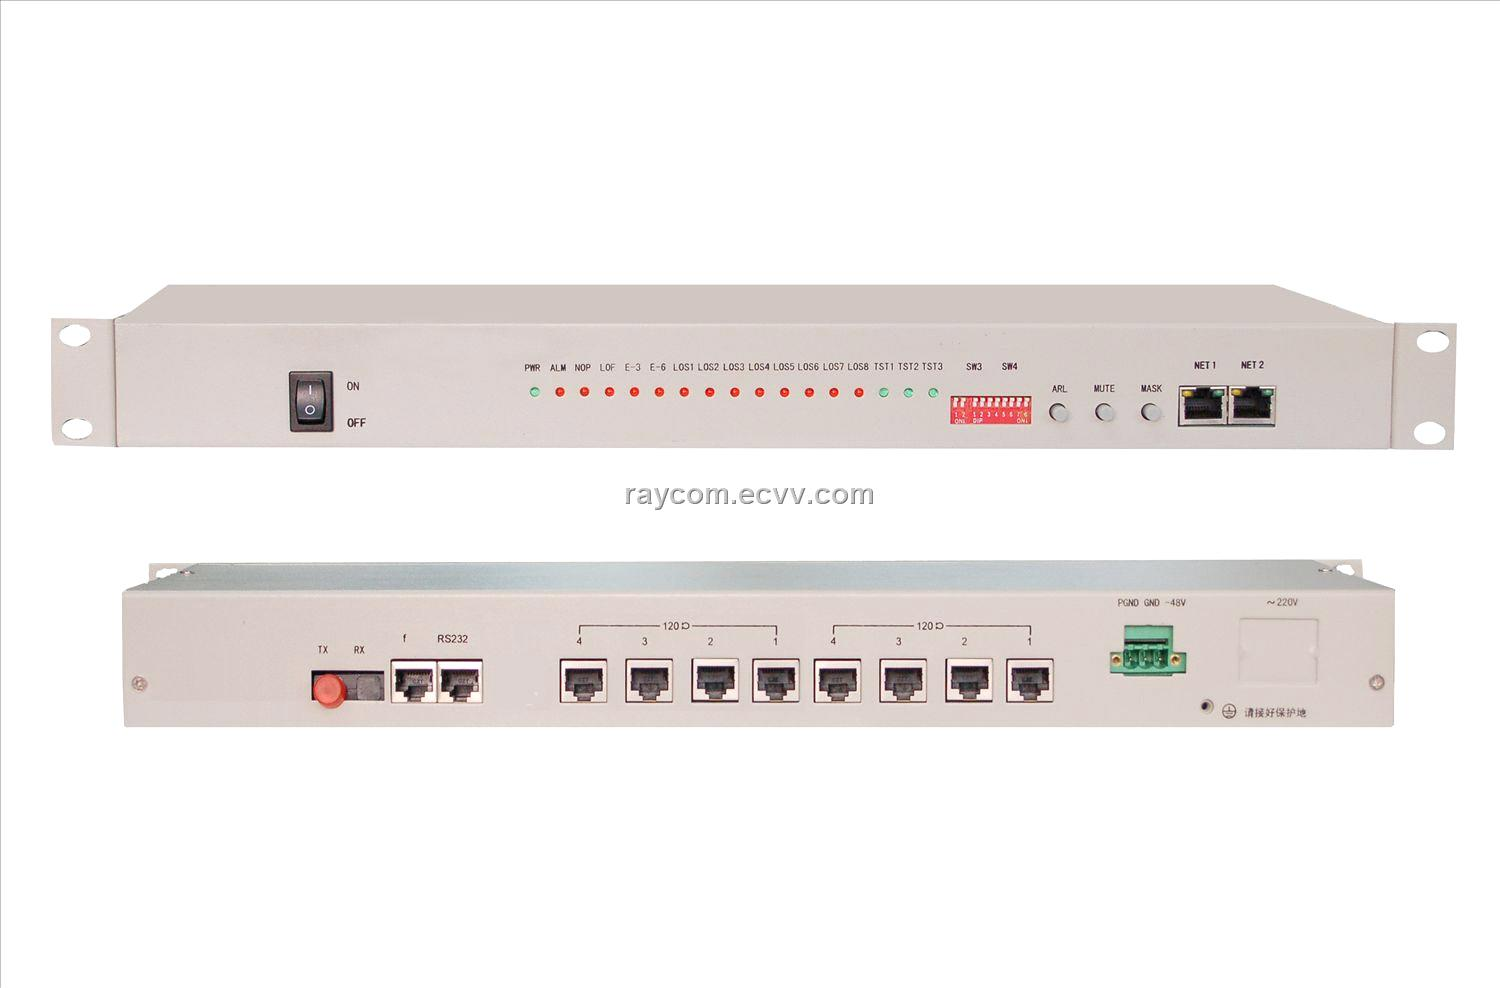 Fiber Optic Multiplexer Sourcing Purchasing Procurement Agent Optics And Circuit Board Hd 00 10 Communications 4e1 8e1 16e1 Pdh